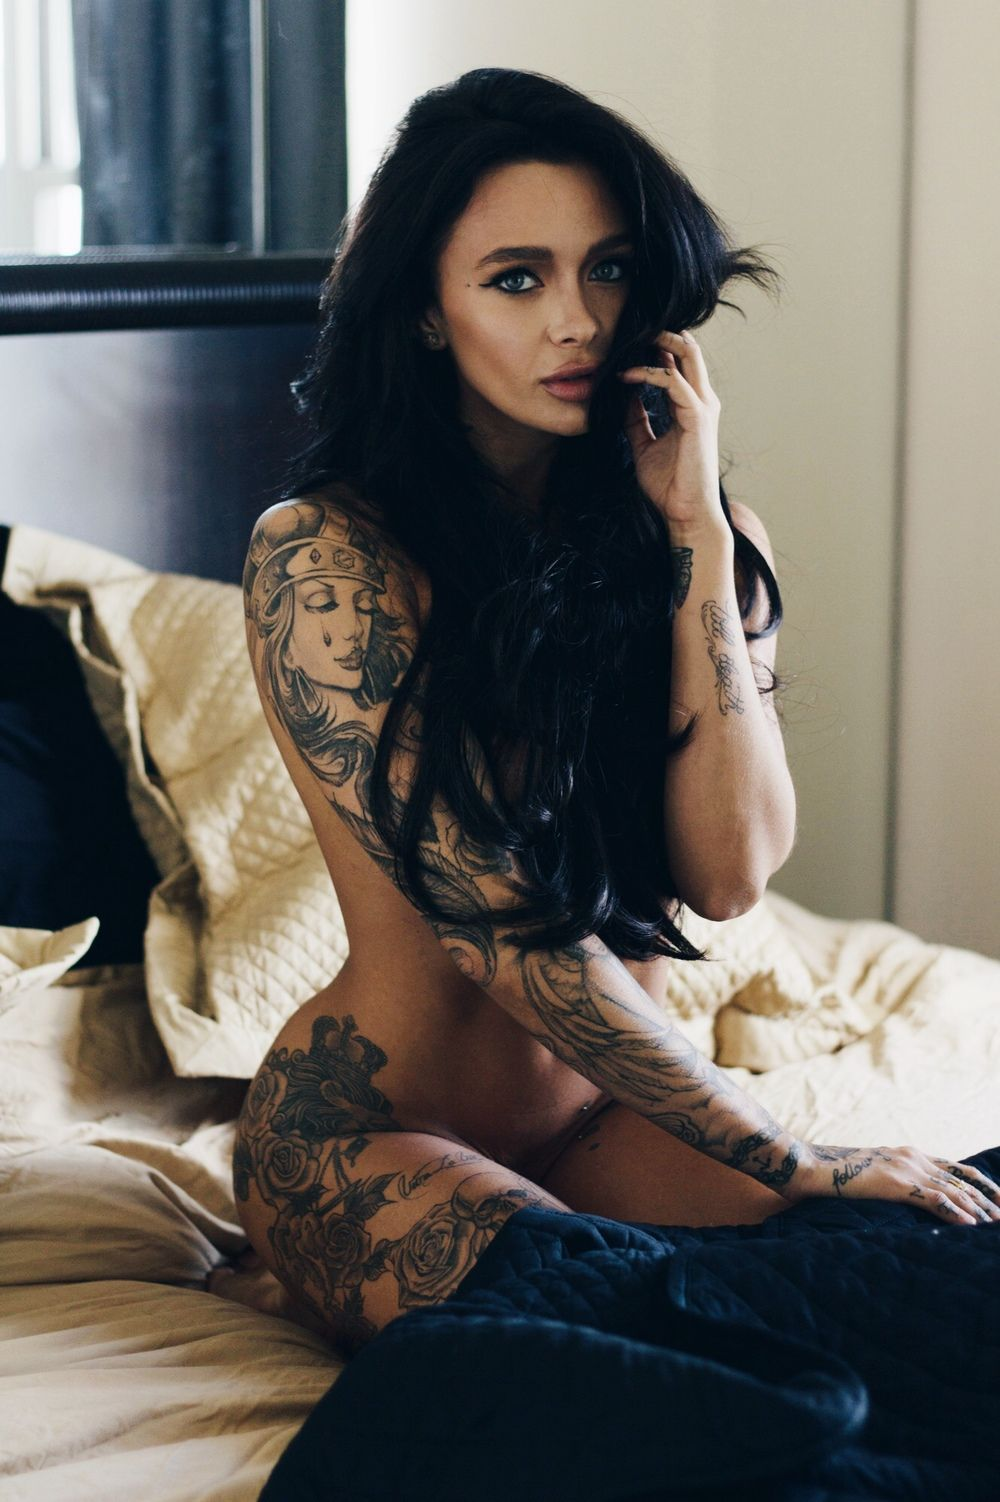 Mercedes Edison stunning tattooed